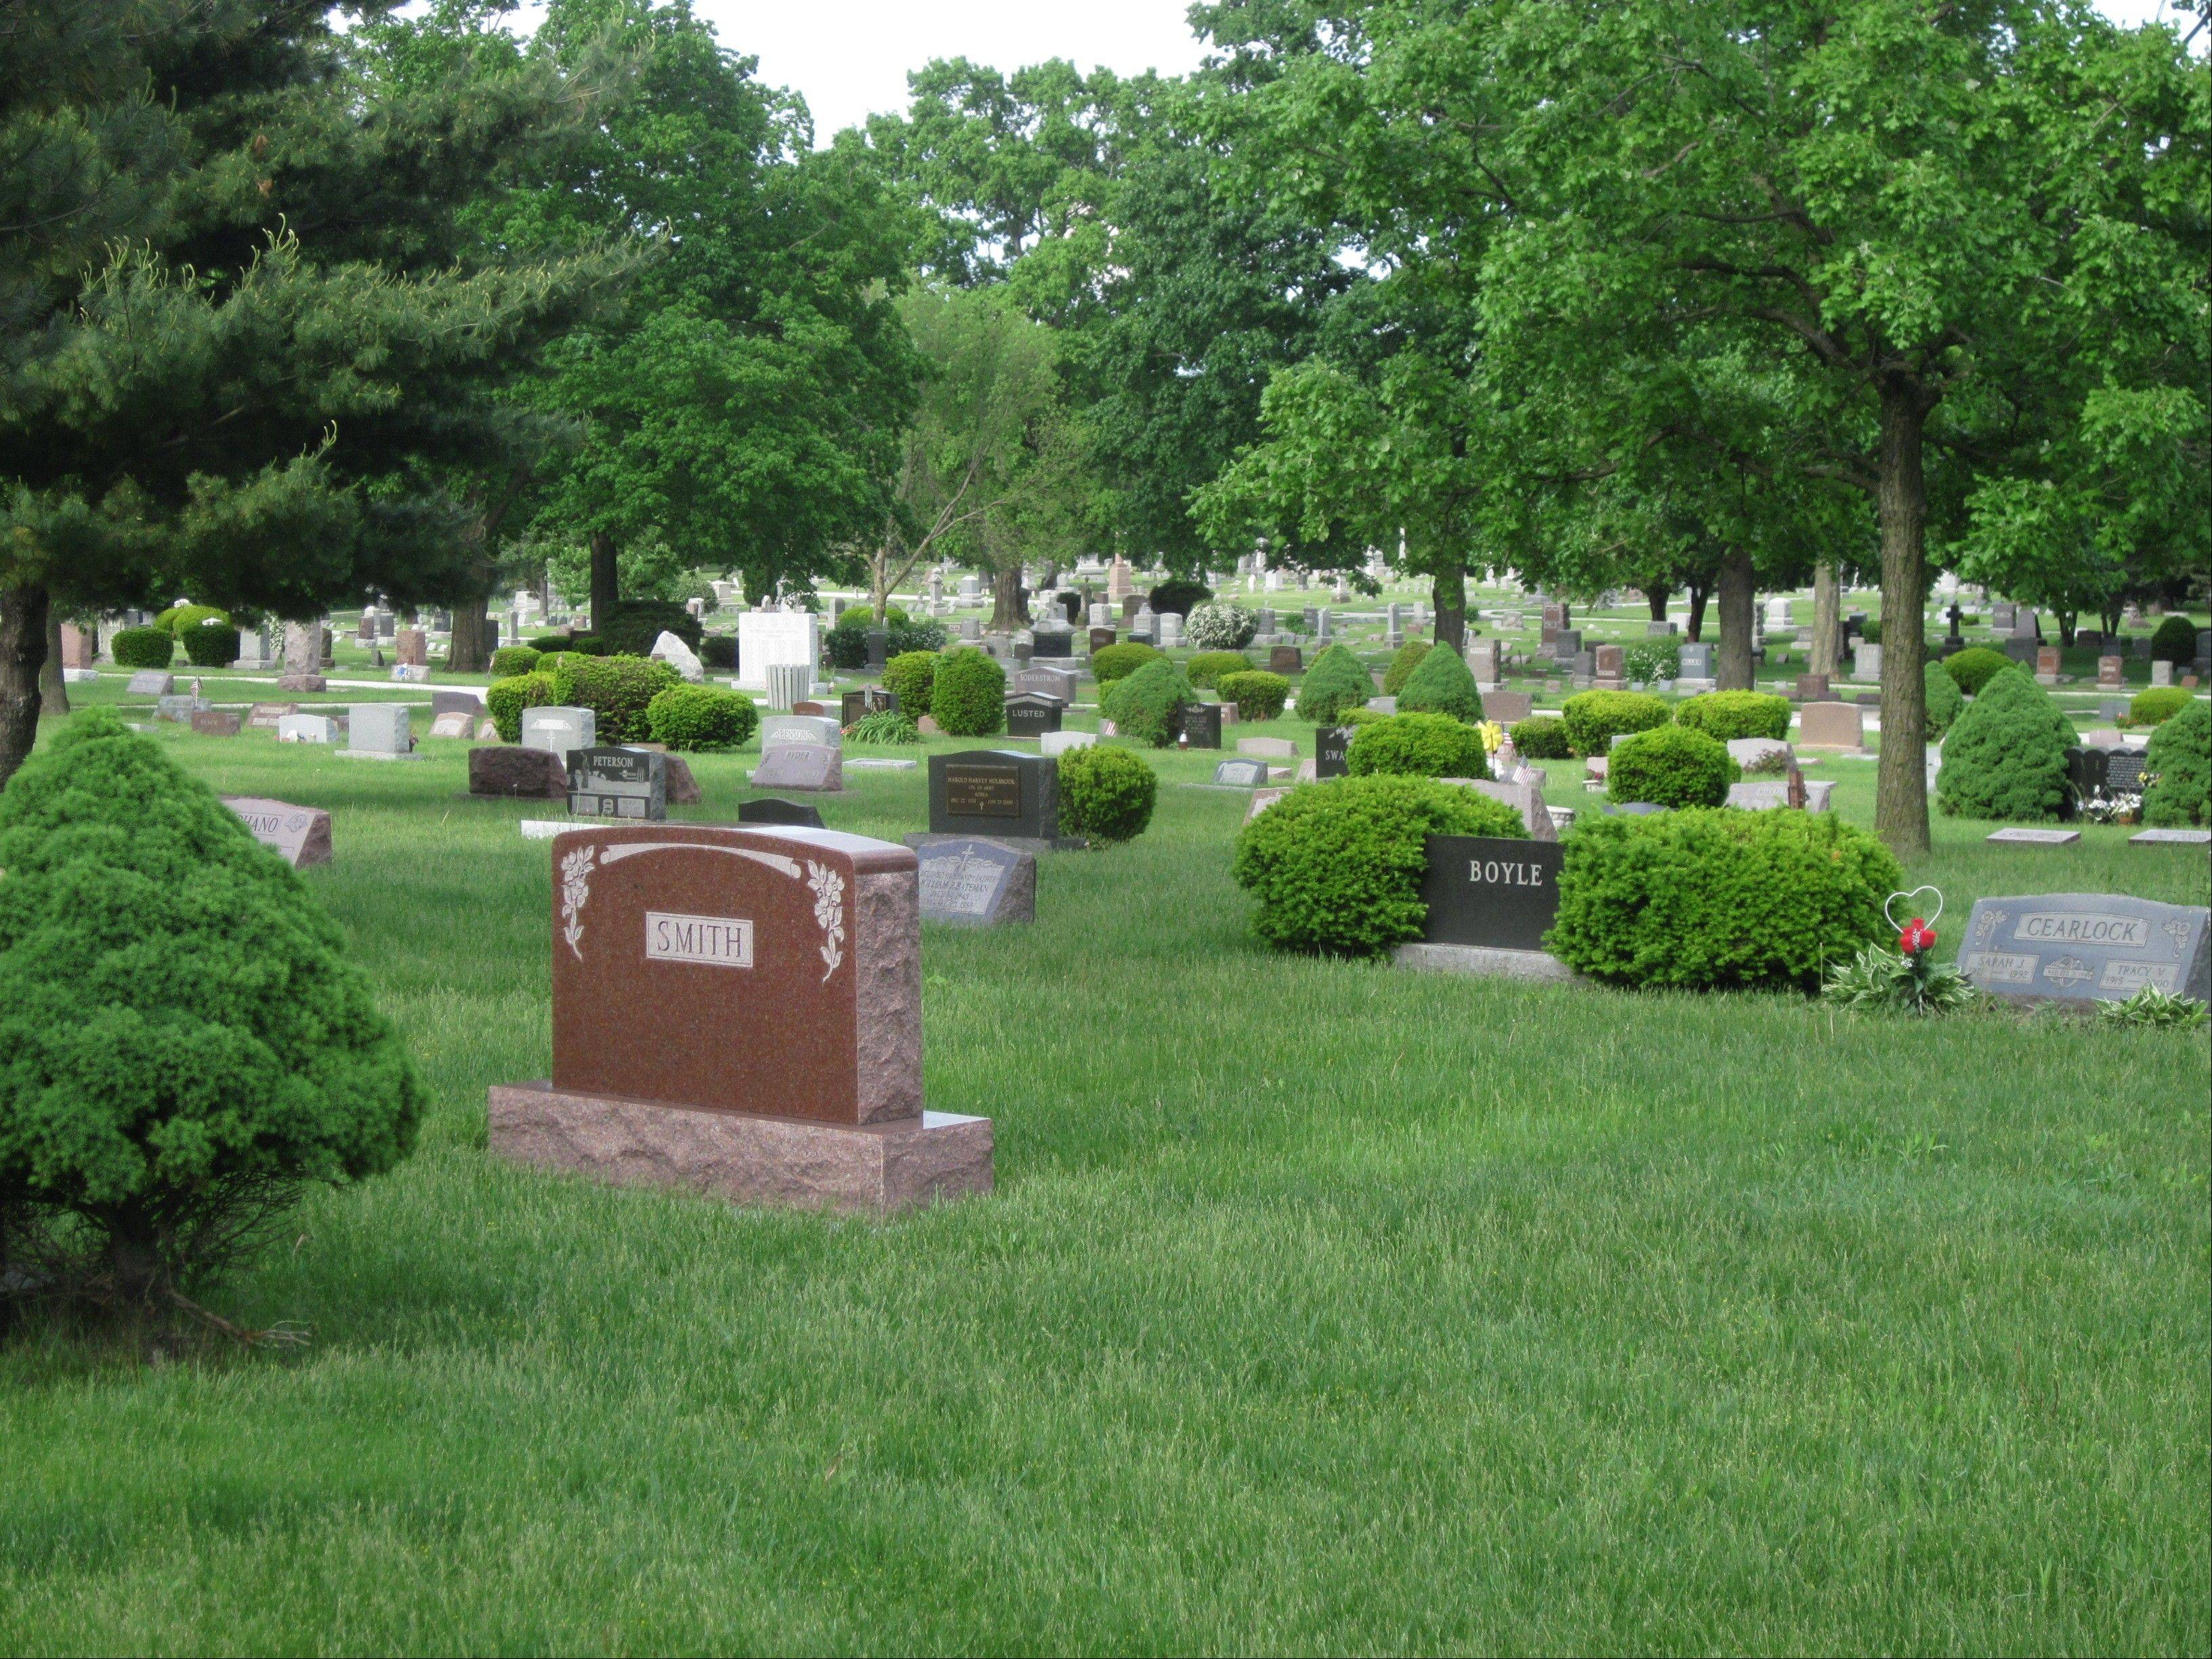 The city of Batavia takes great pride in the upkeep of its two cemeteries, Mayor Jeff Schielke says. West Batavia Cemetery, above, is on Batavia Avenue. East Batavia Cemetery on Washington Street.